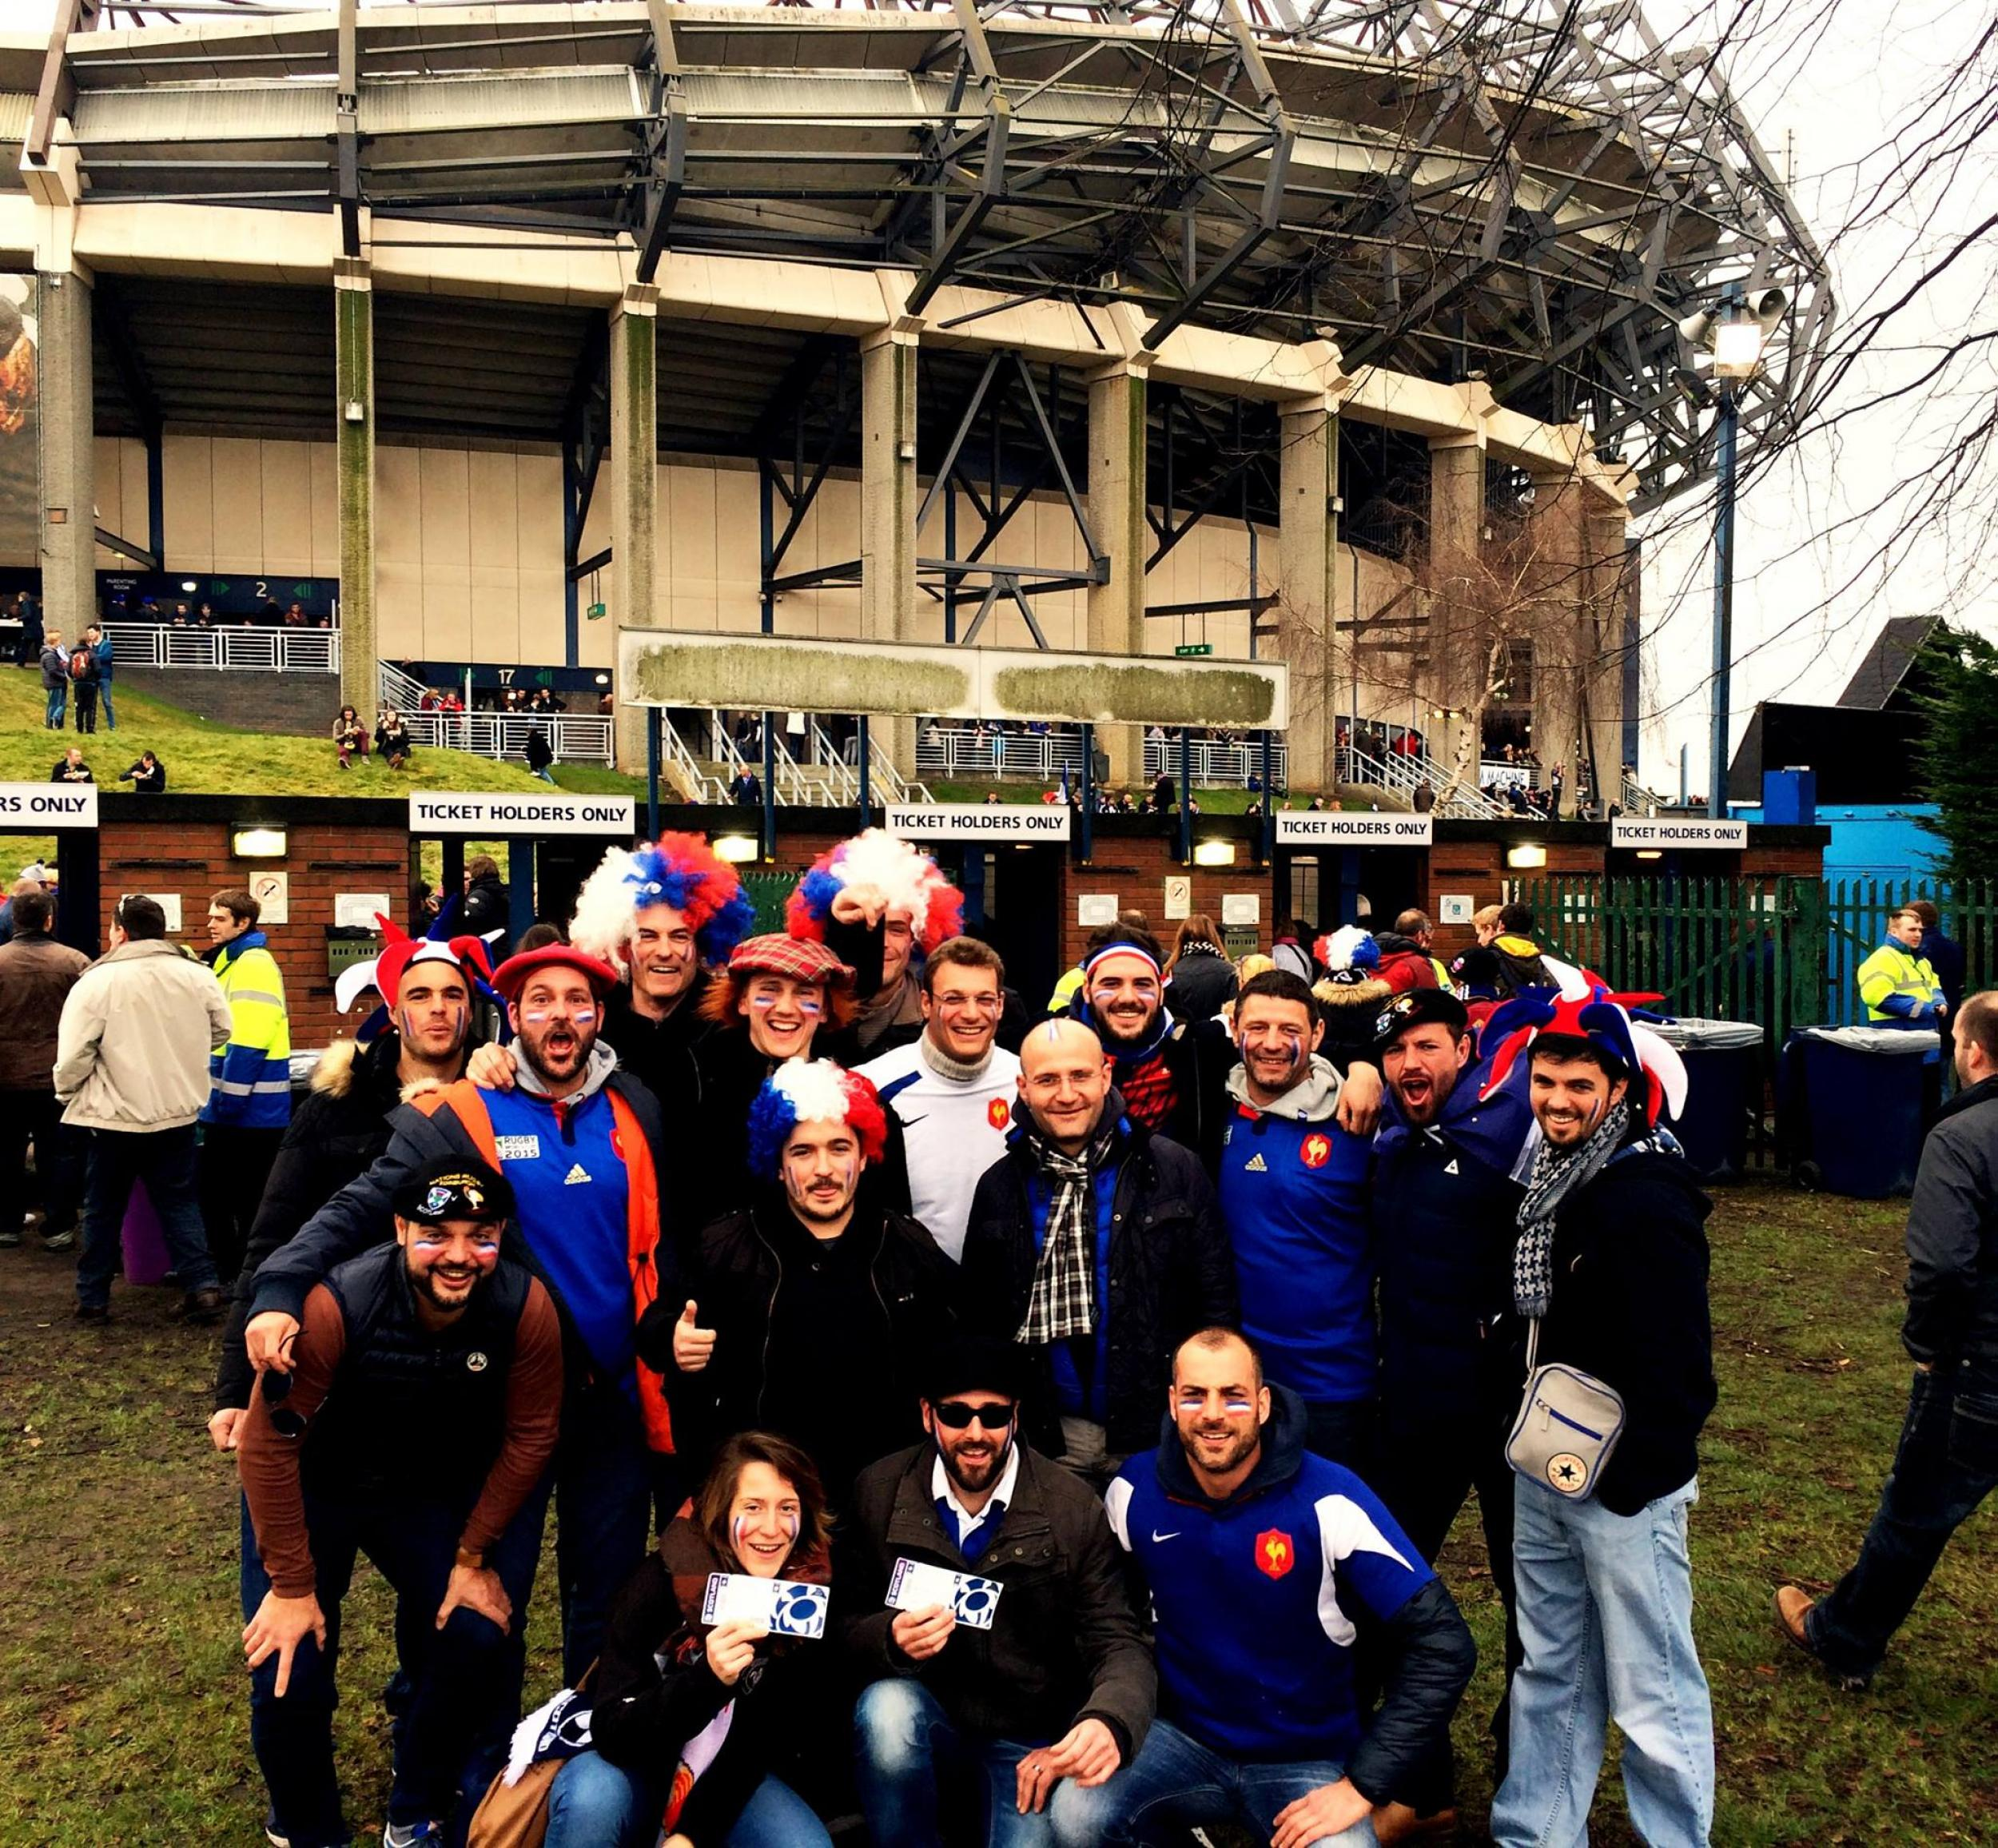 Temoignage Voyage Rugby 6 NATIONS - SCO v FRA - Groupe Couleur